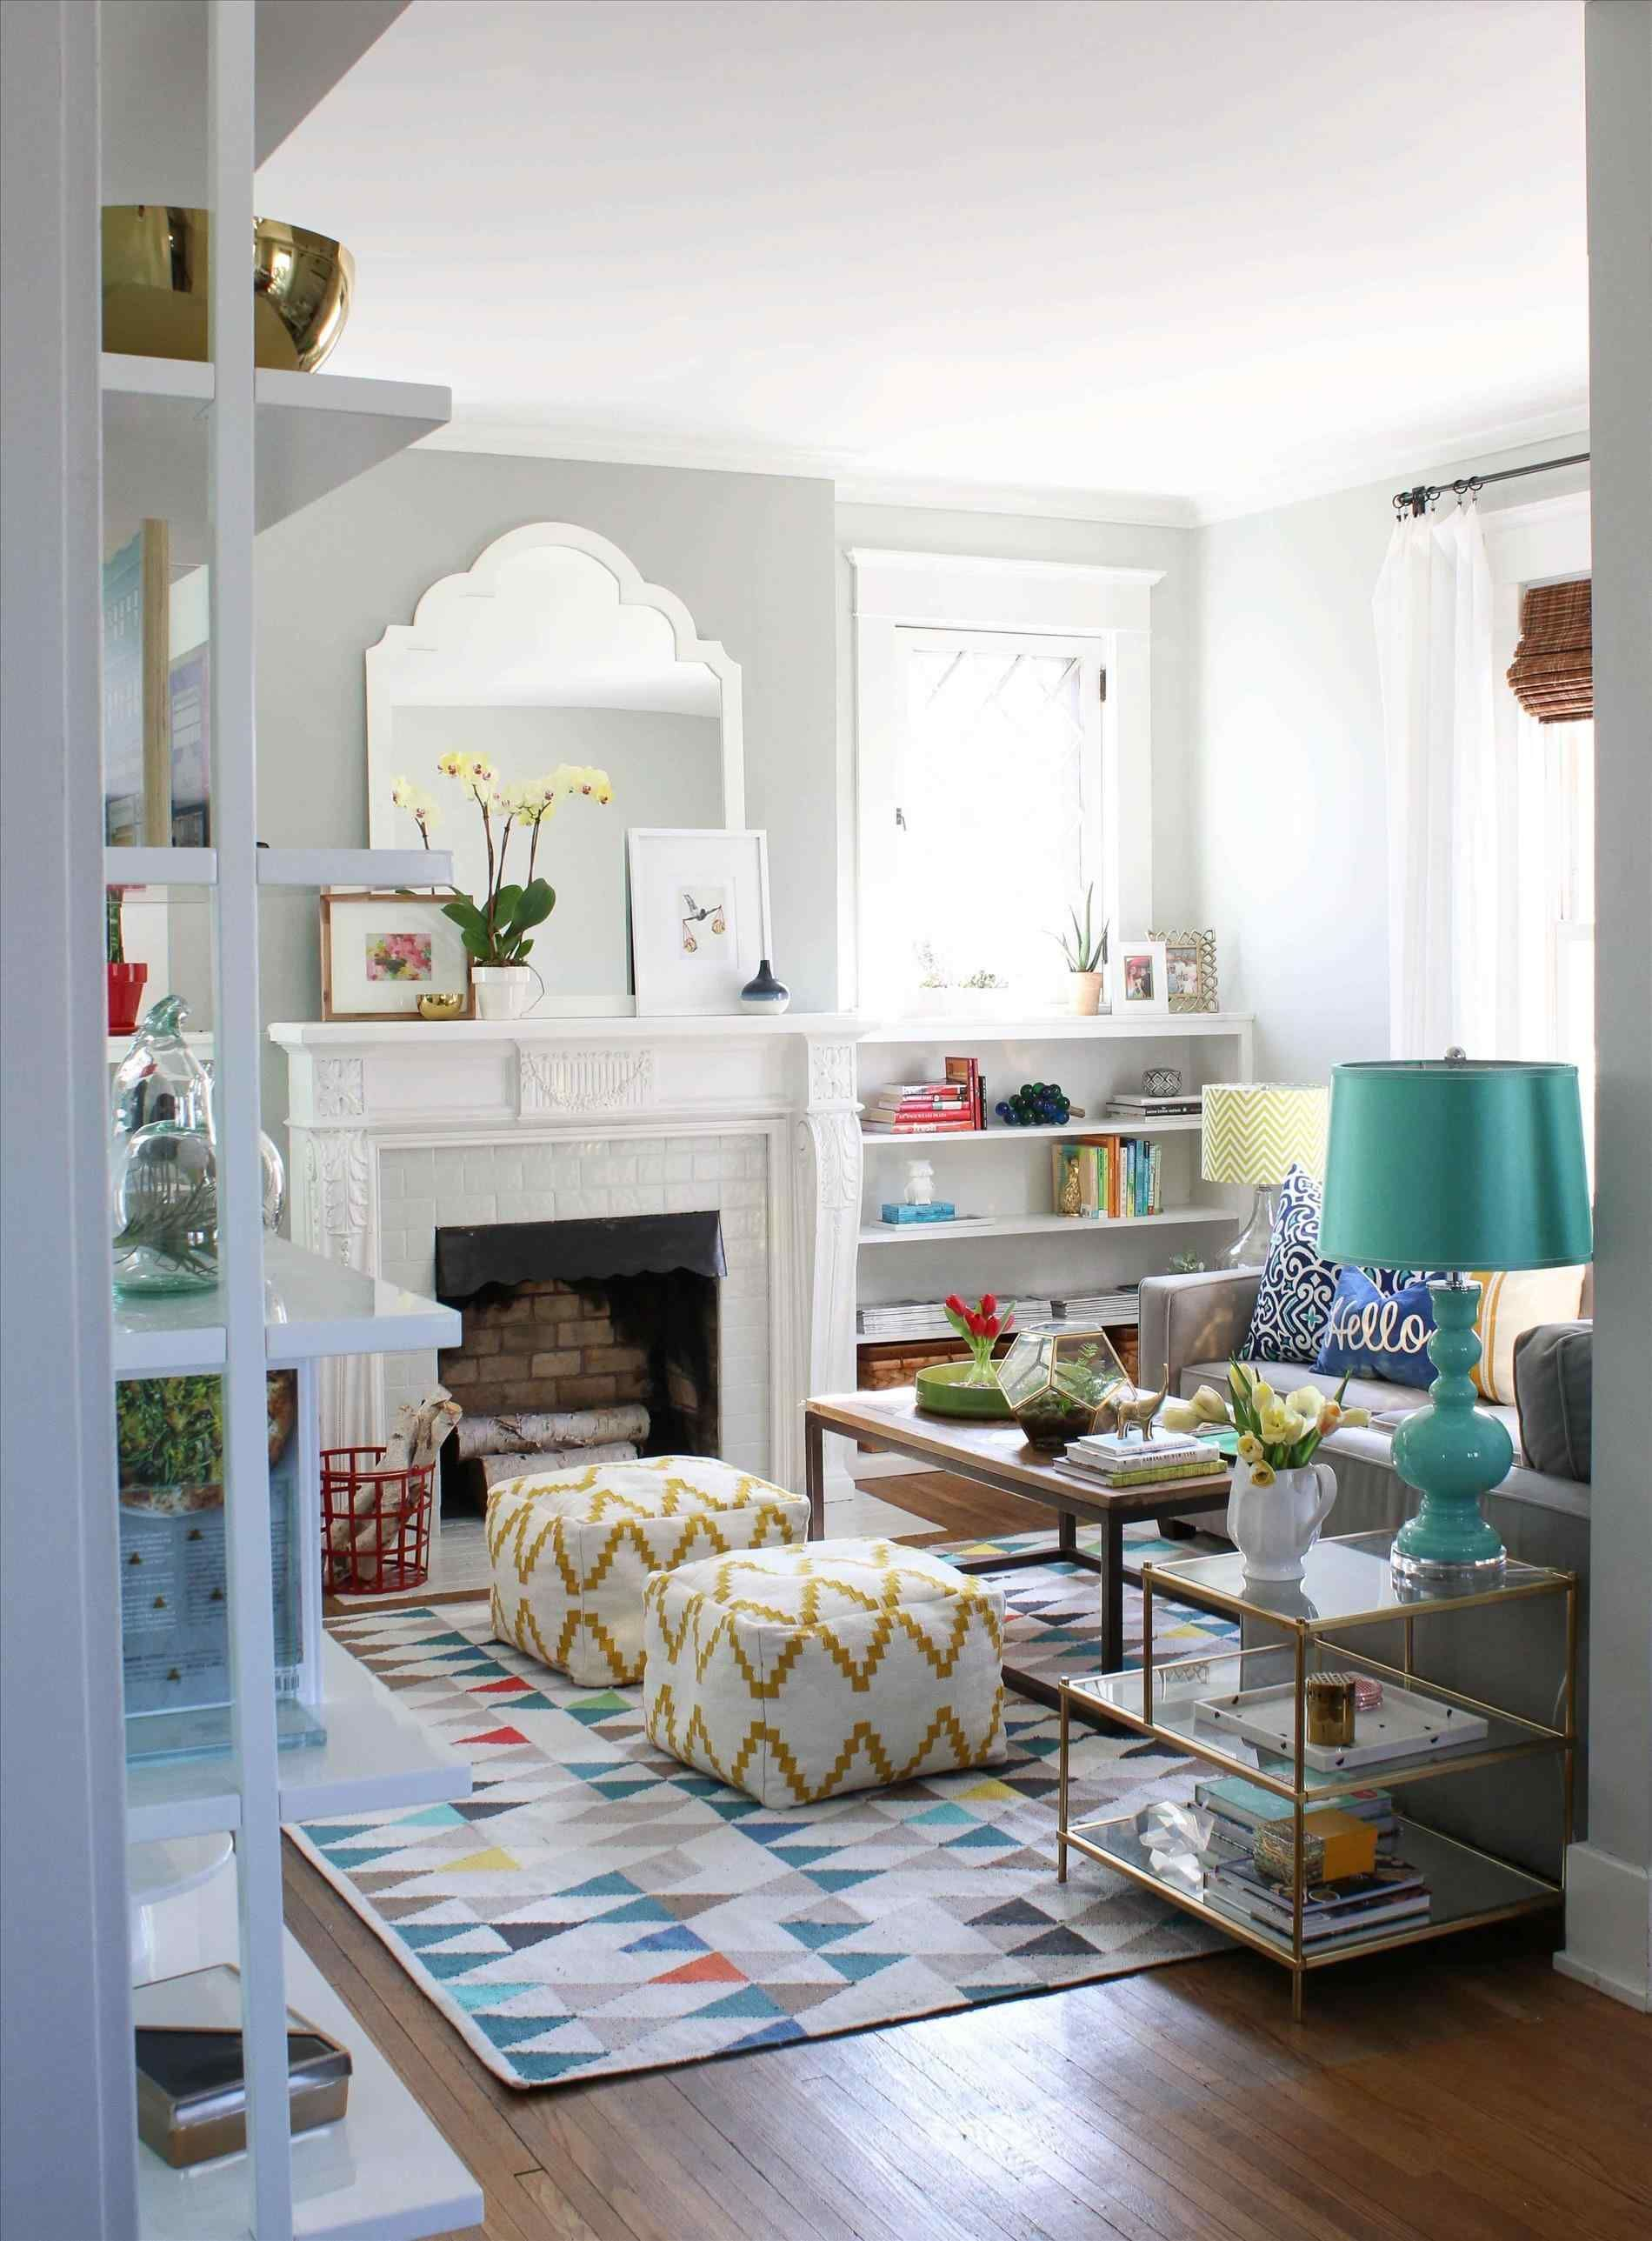 Adding Color To A Kids Roomrhfreshomecom Ideas Neutral Bedrooms With Pops Of Color For Adding Color To A Kids Roomrhfreshomecom Cleaning Tips images